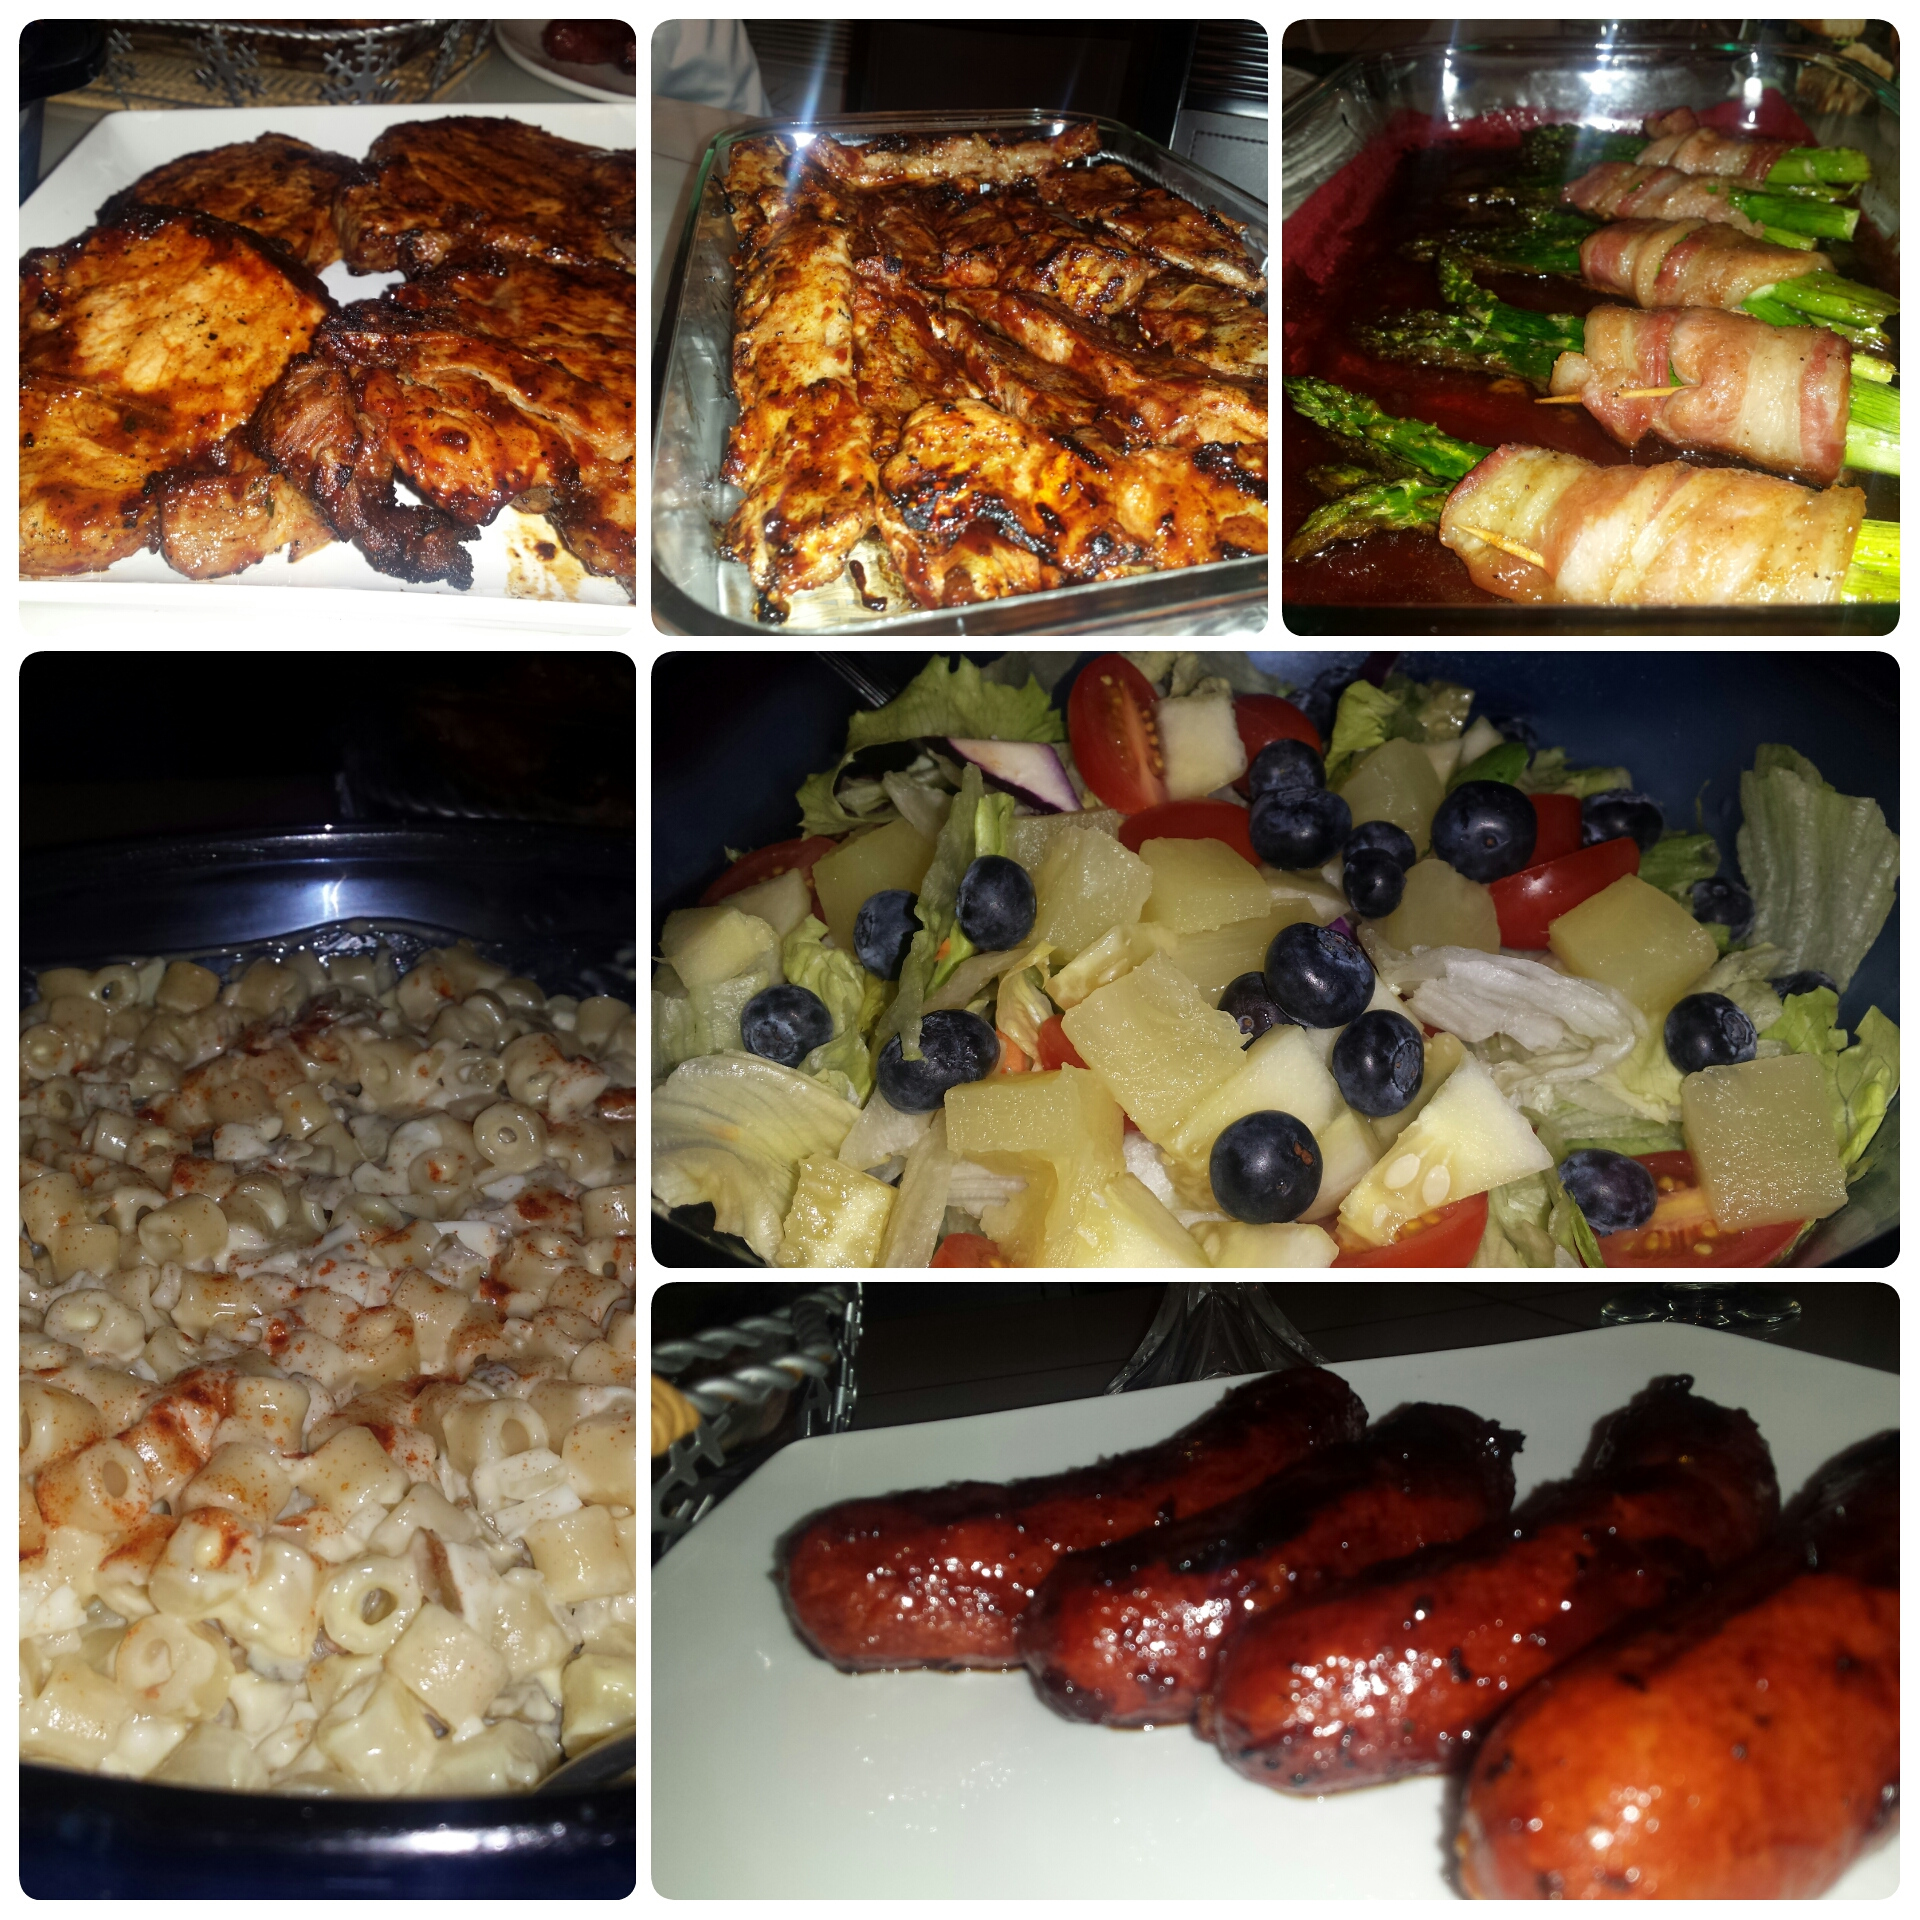 barbecue pork chops, brown sugar bacon wrapped asparagus, pork riblets, macaroni salad, hotlinks, salad